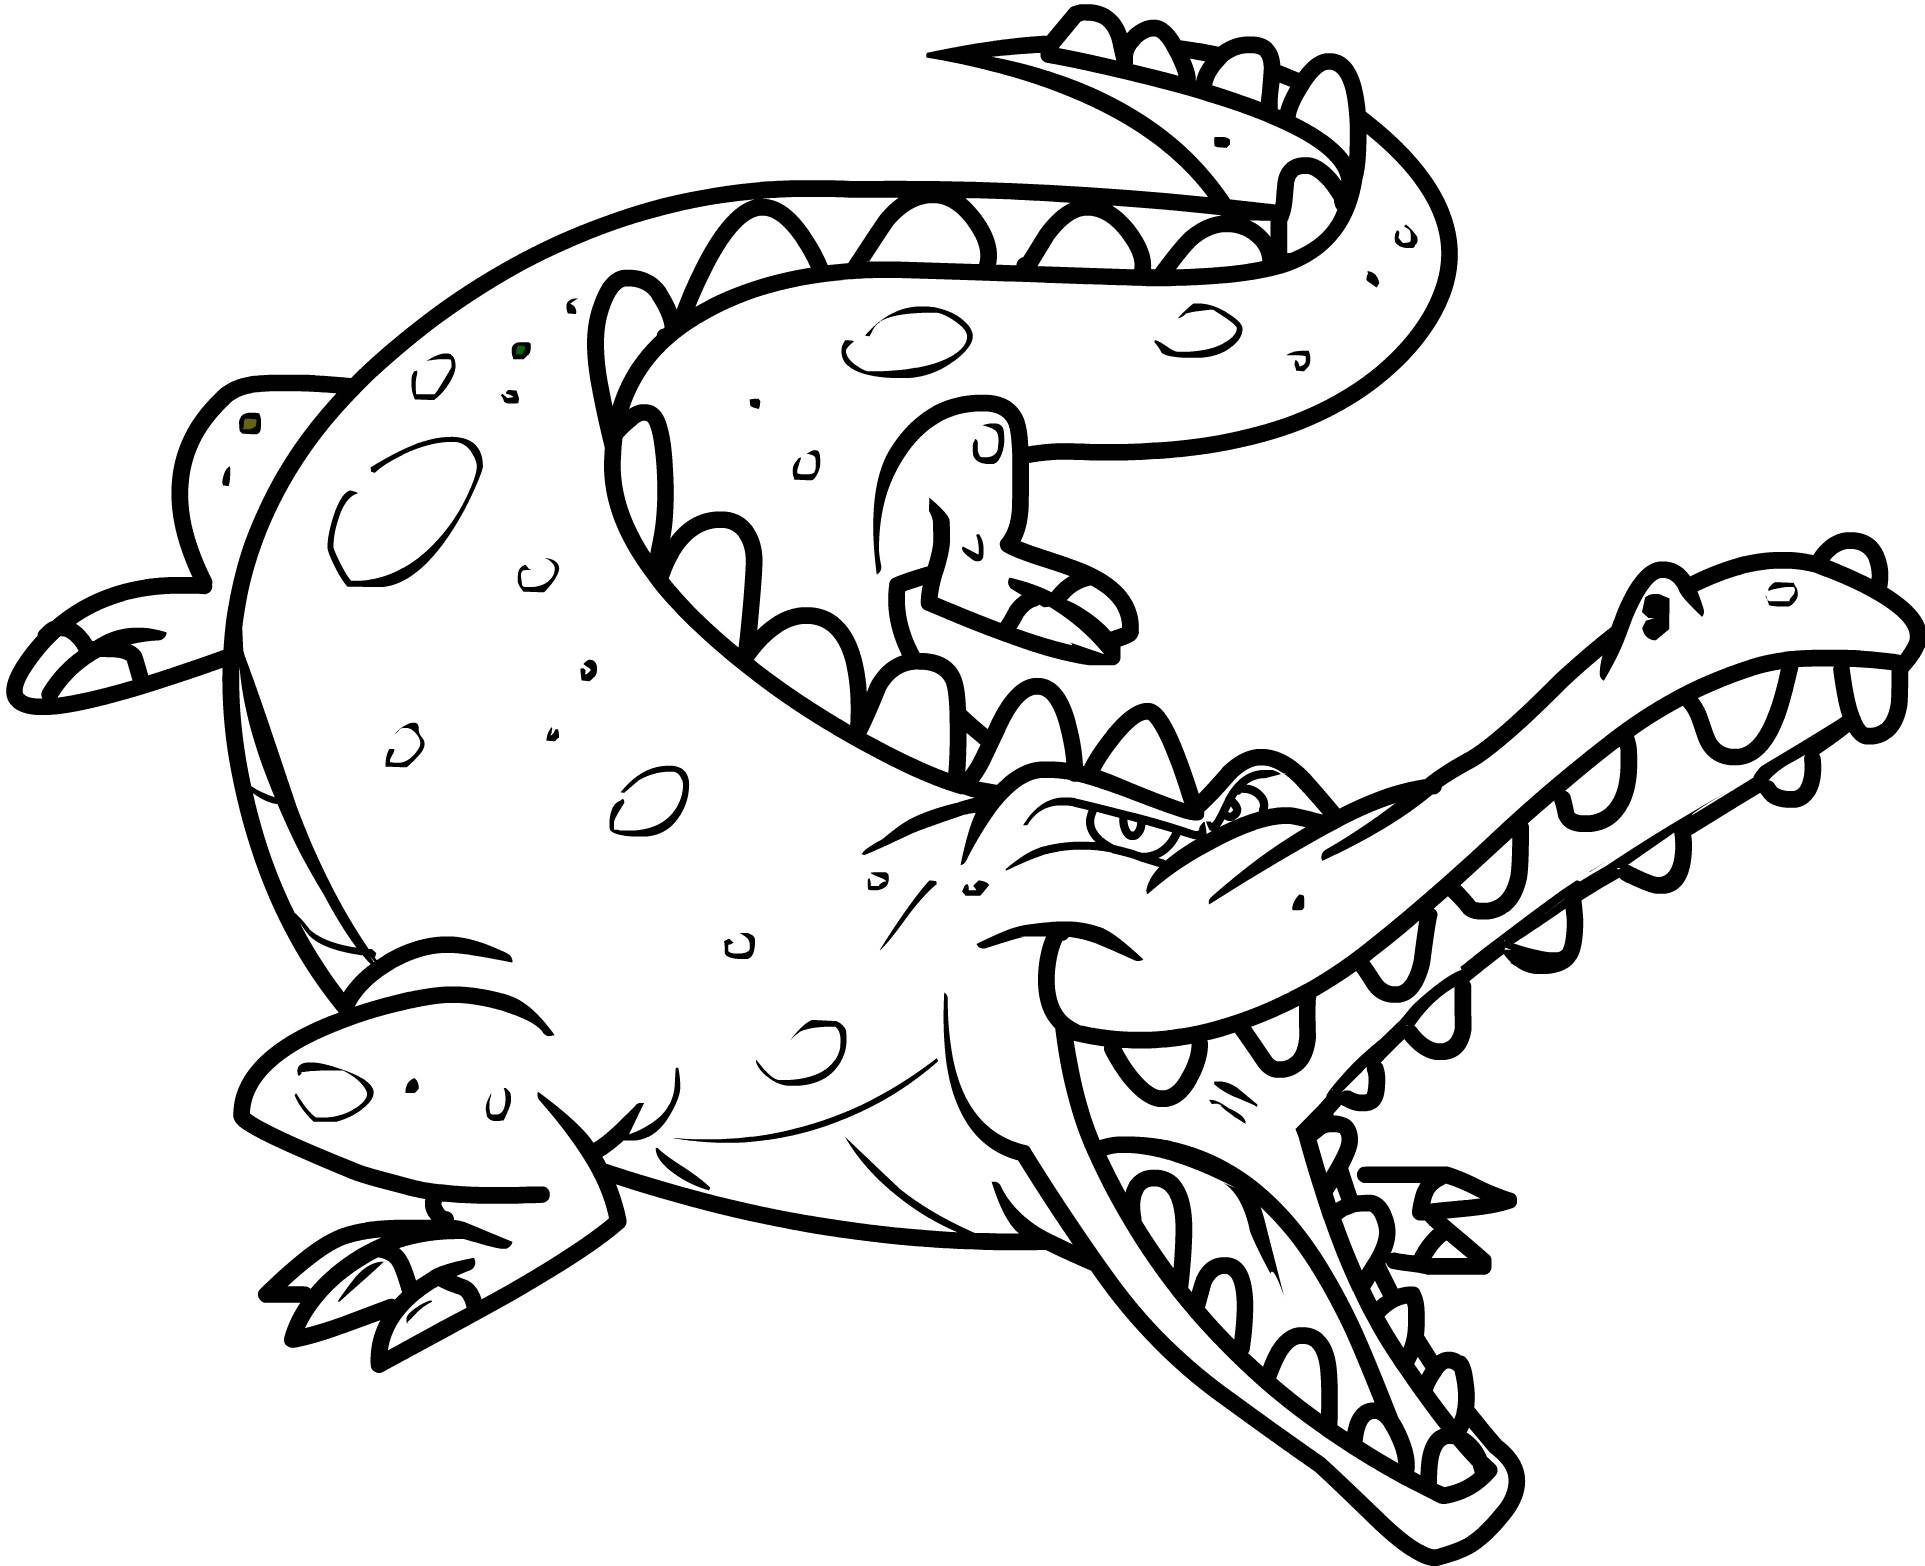 coloring pages easy to print - free printable crocodile coloring pages for kids